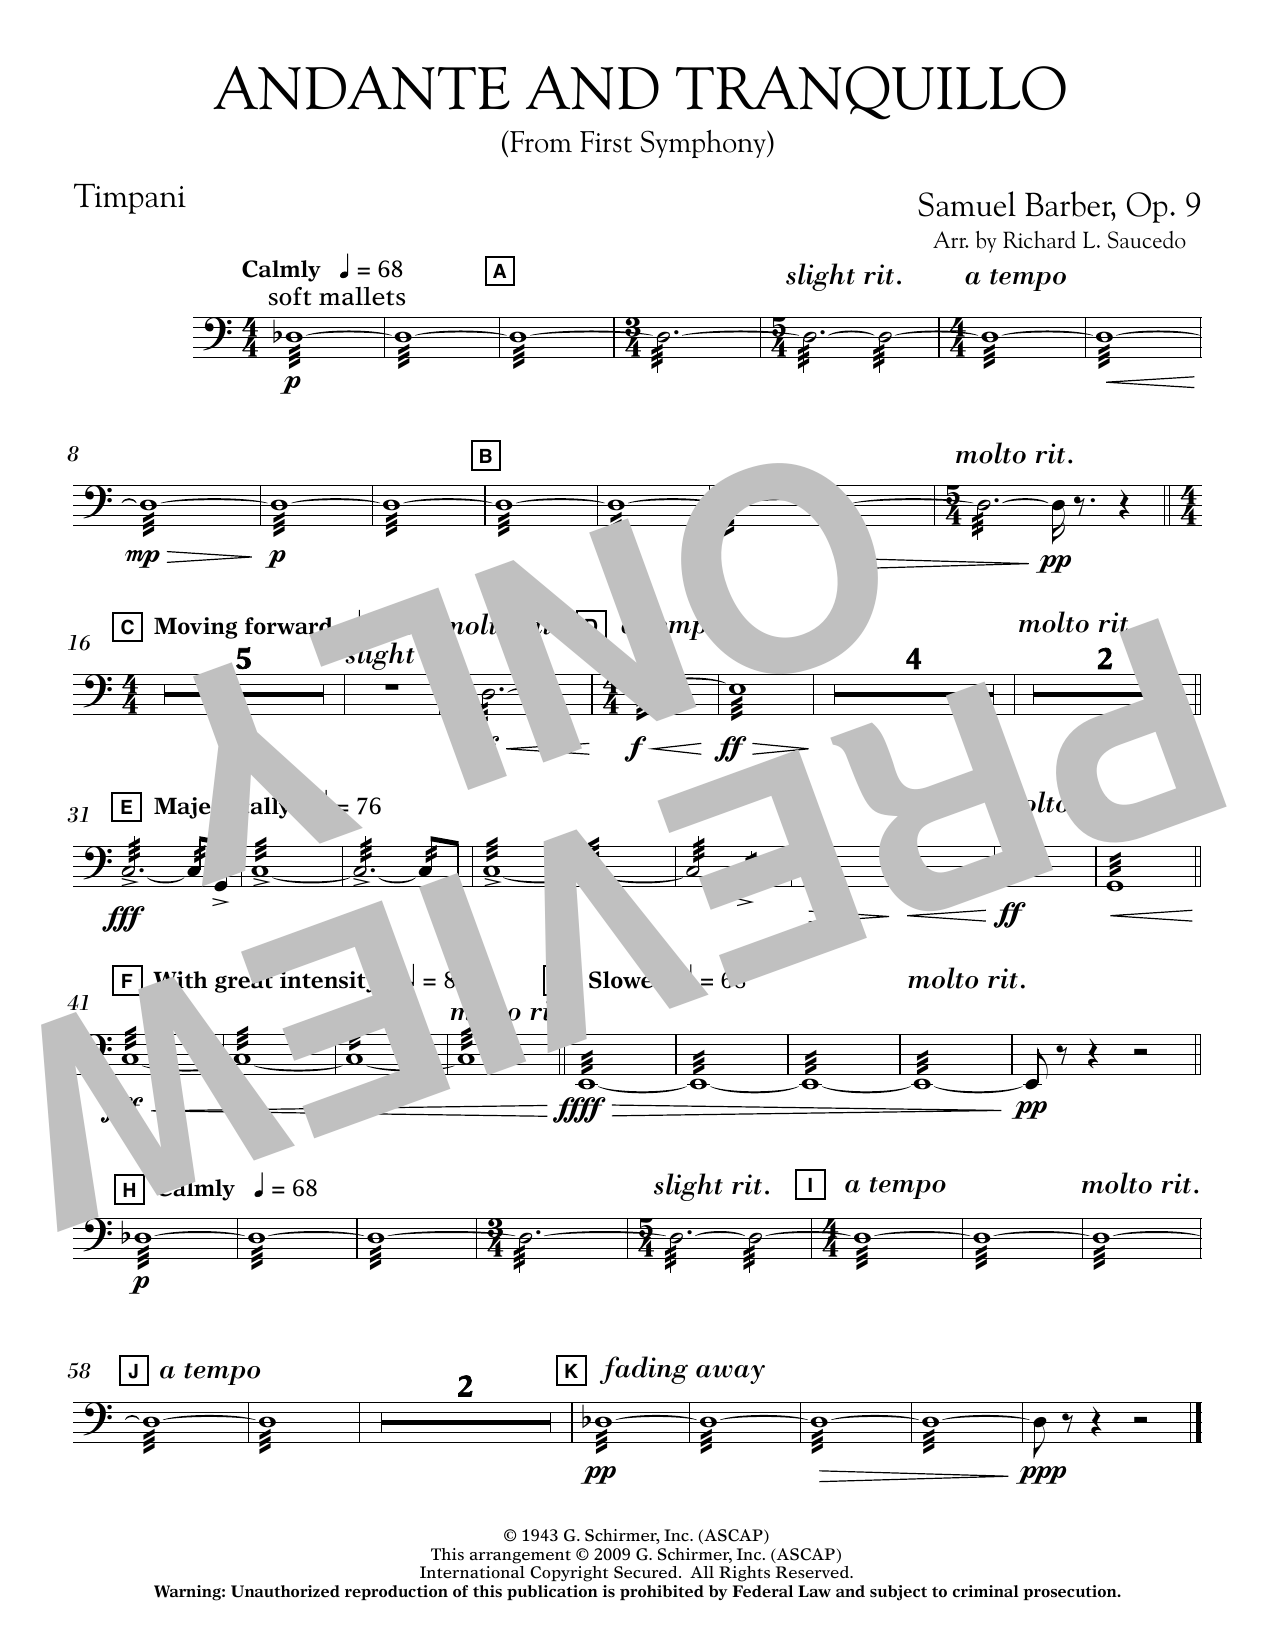 Andante and Tranquillo (from First Symphony) - Timpani